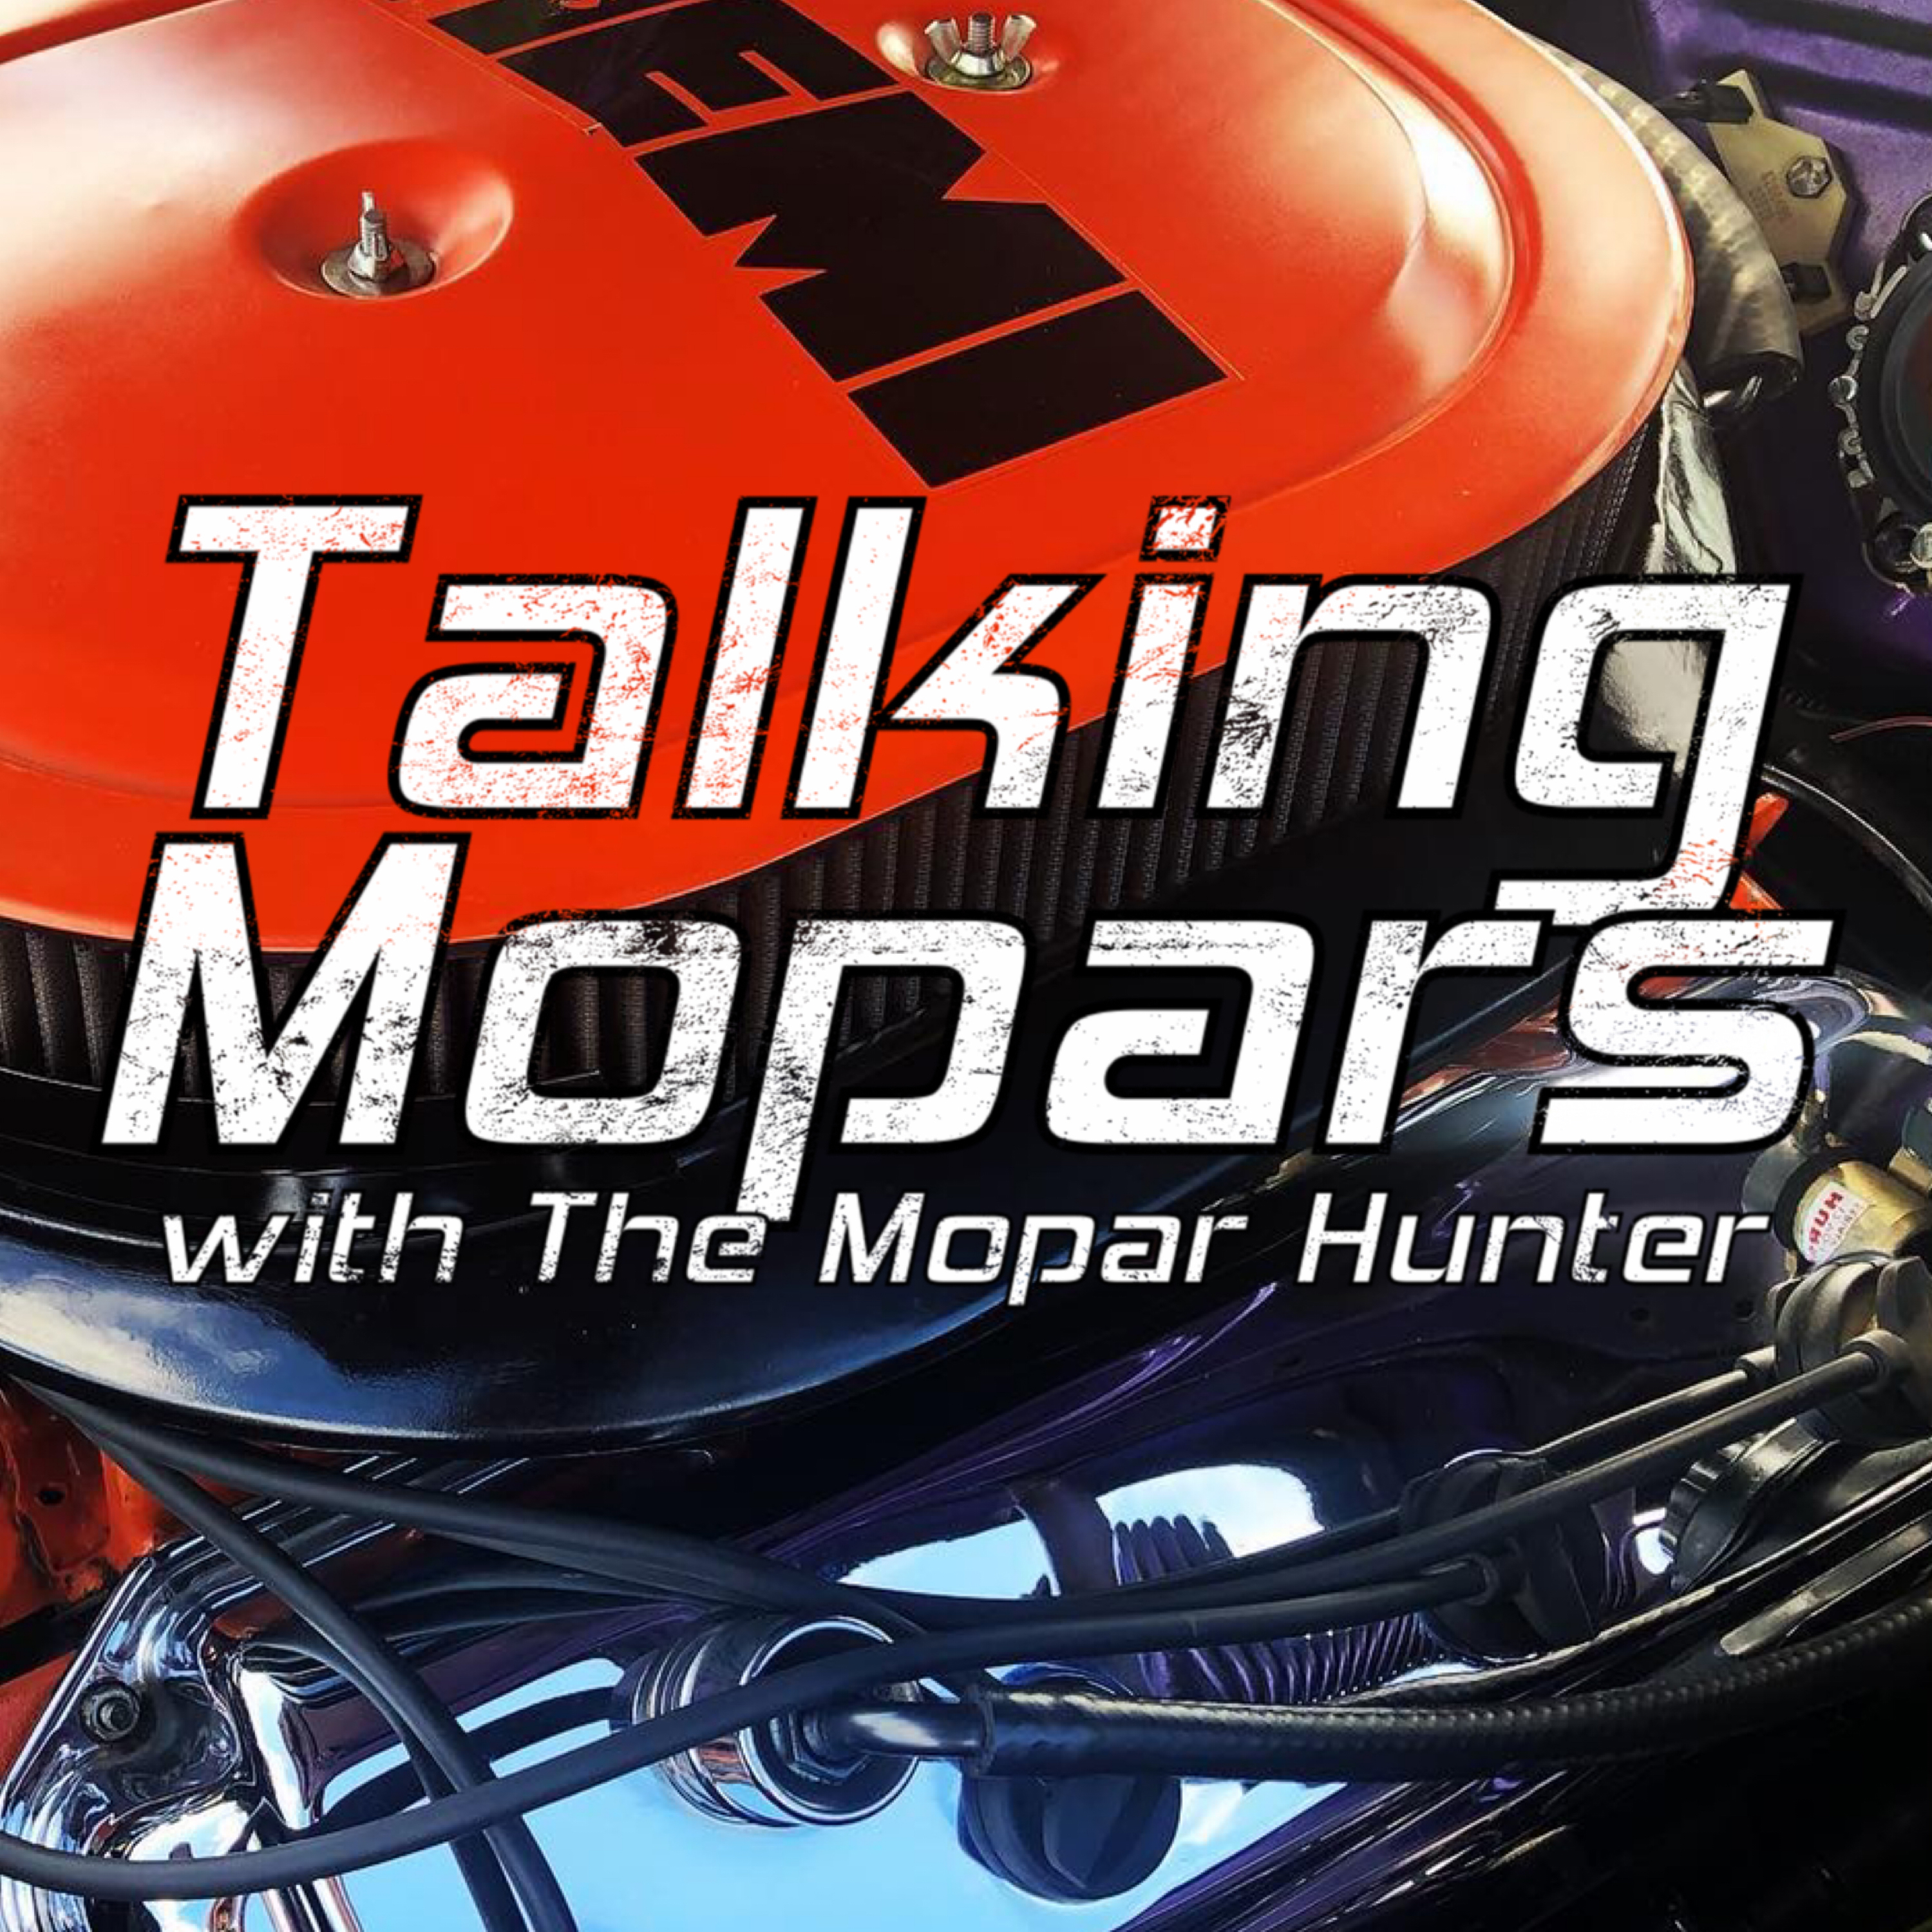 How I Became Obsessed With Mopars